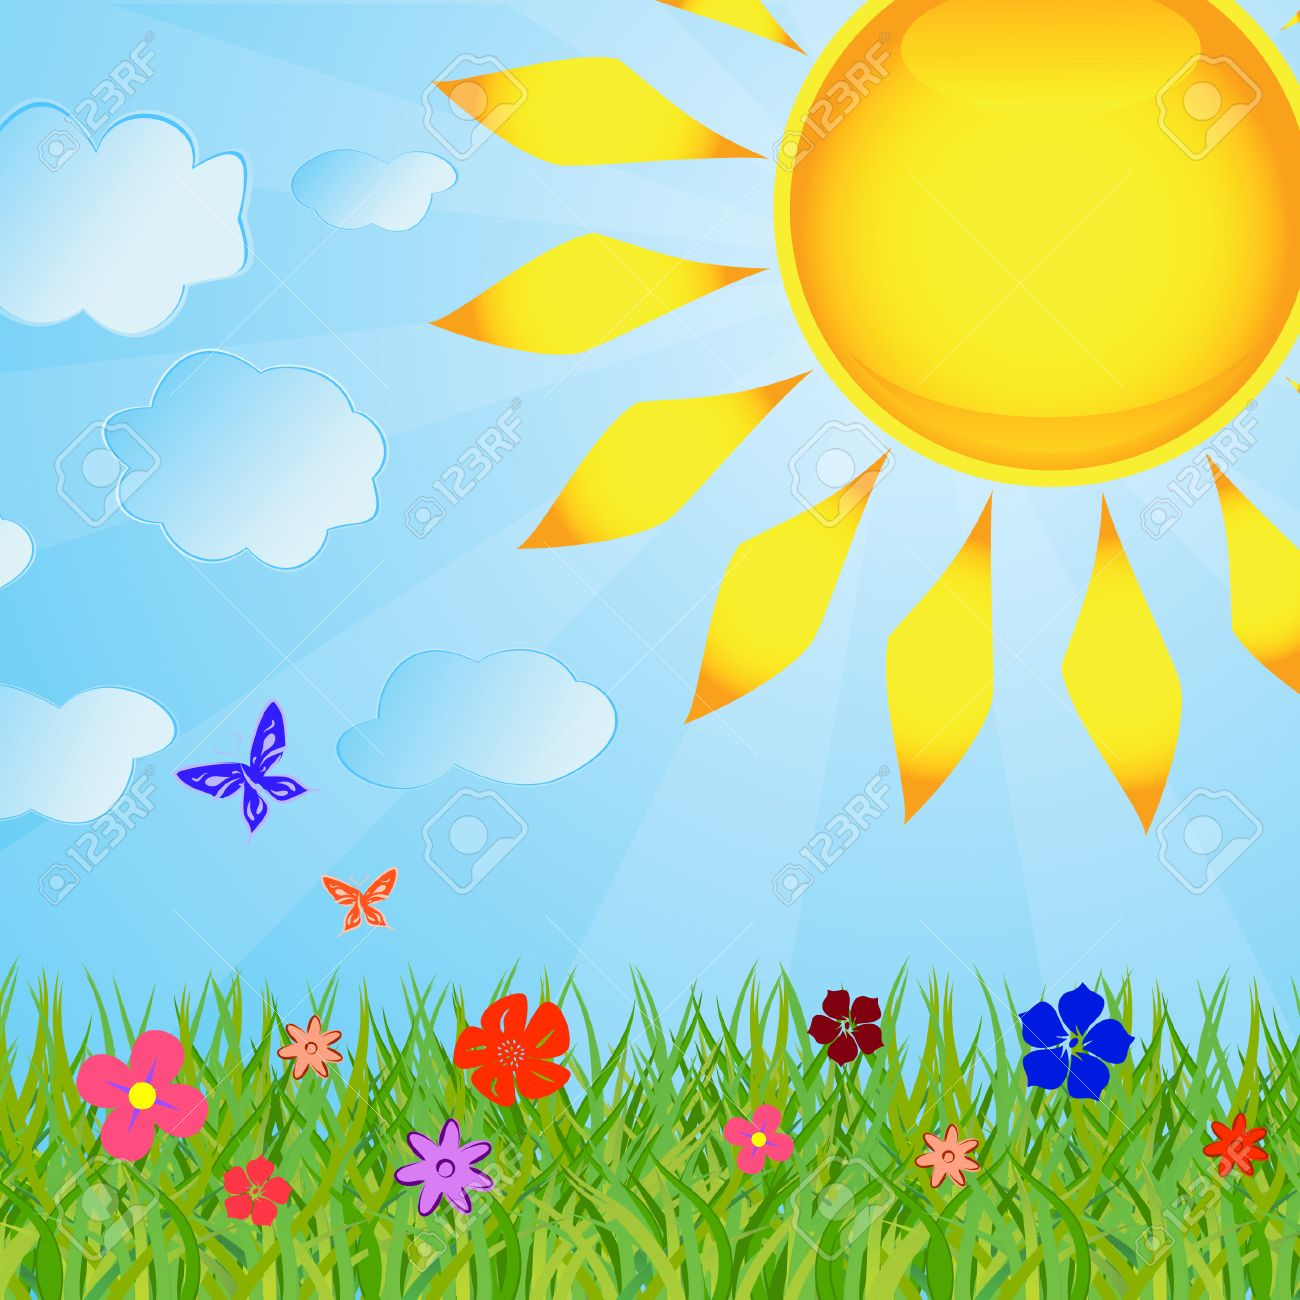 Clipart grass sun. Summer background with the